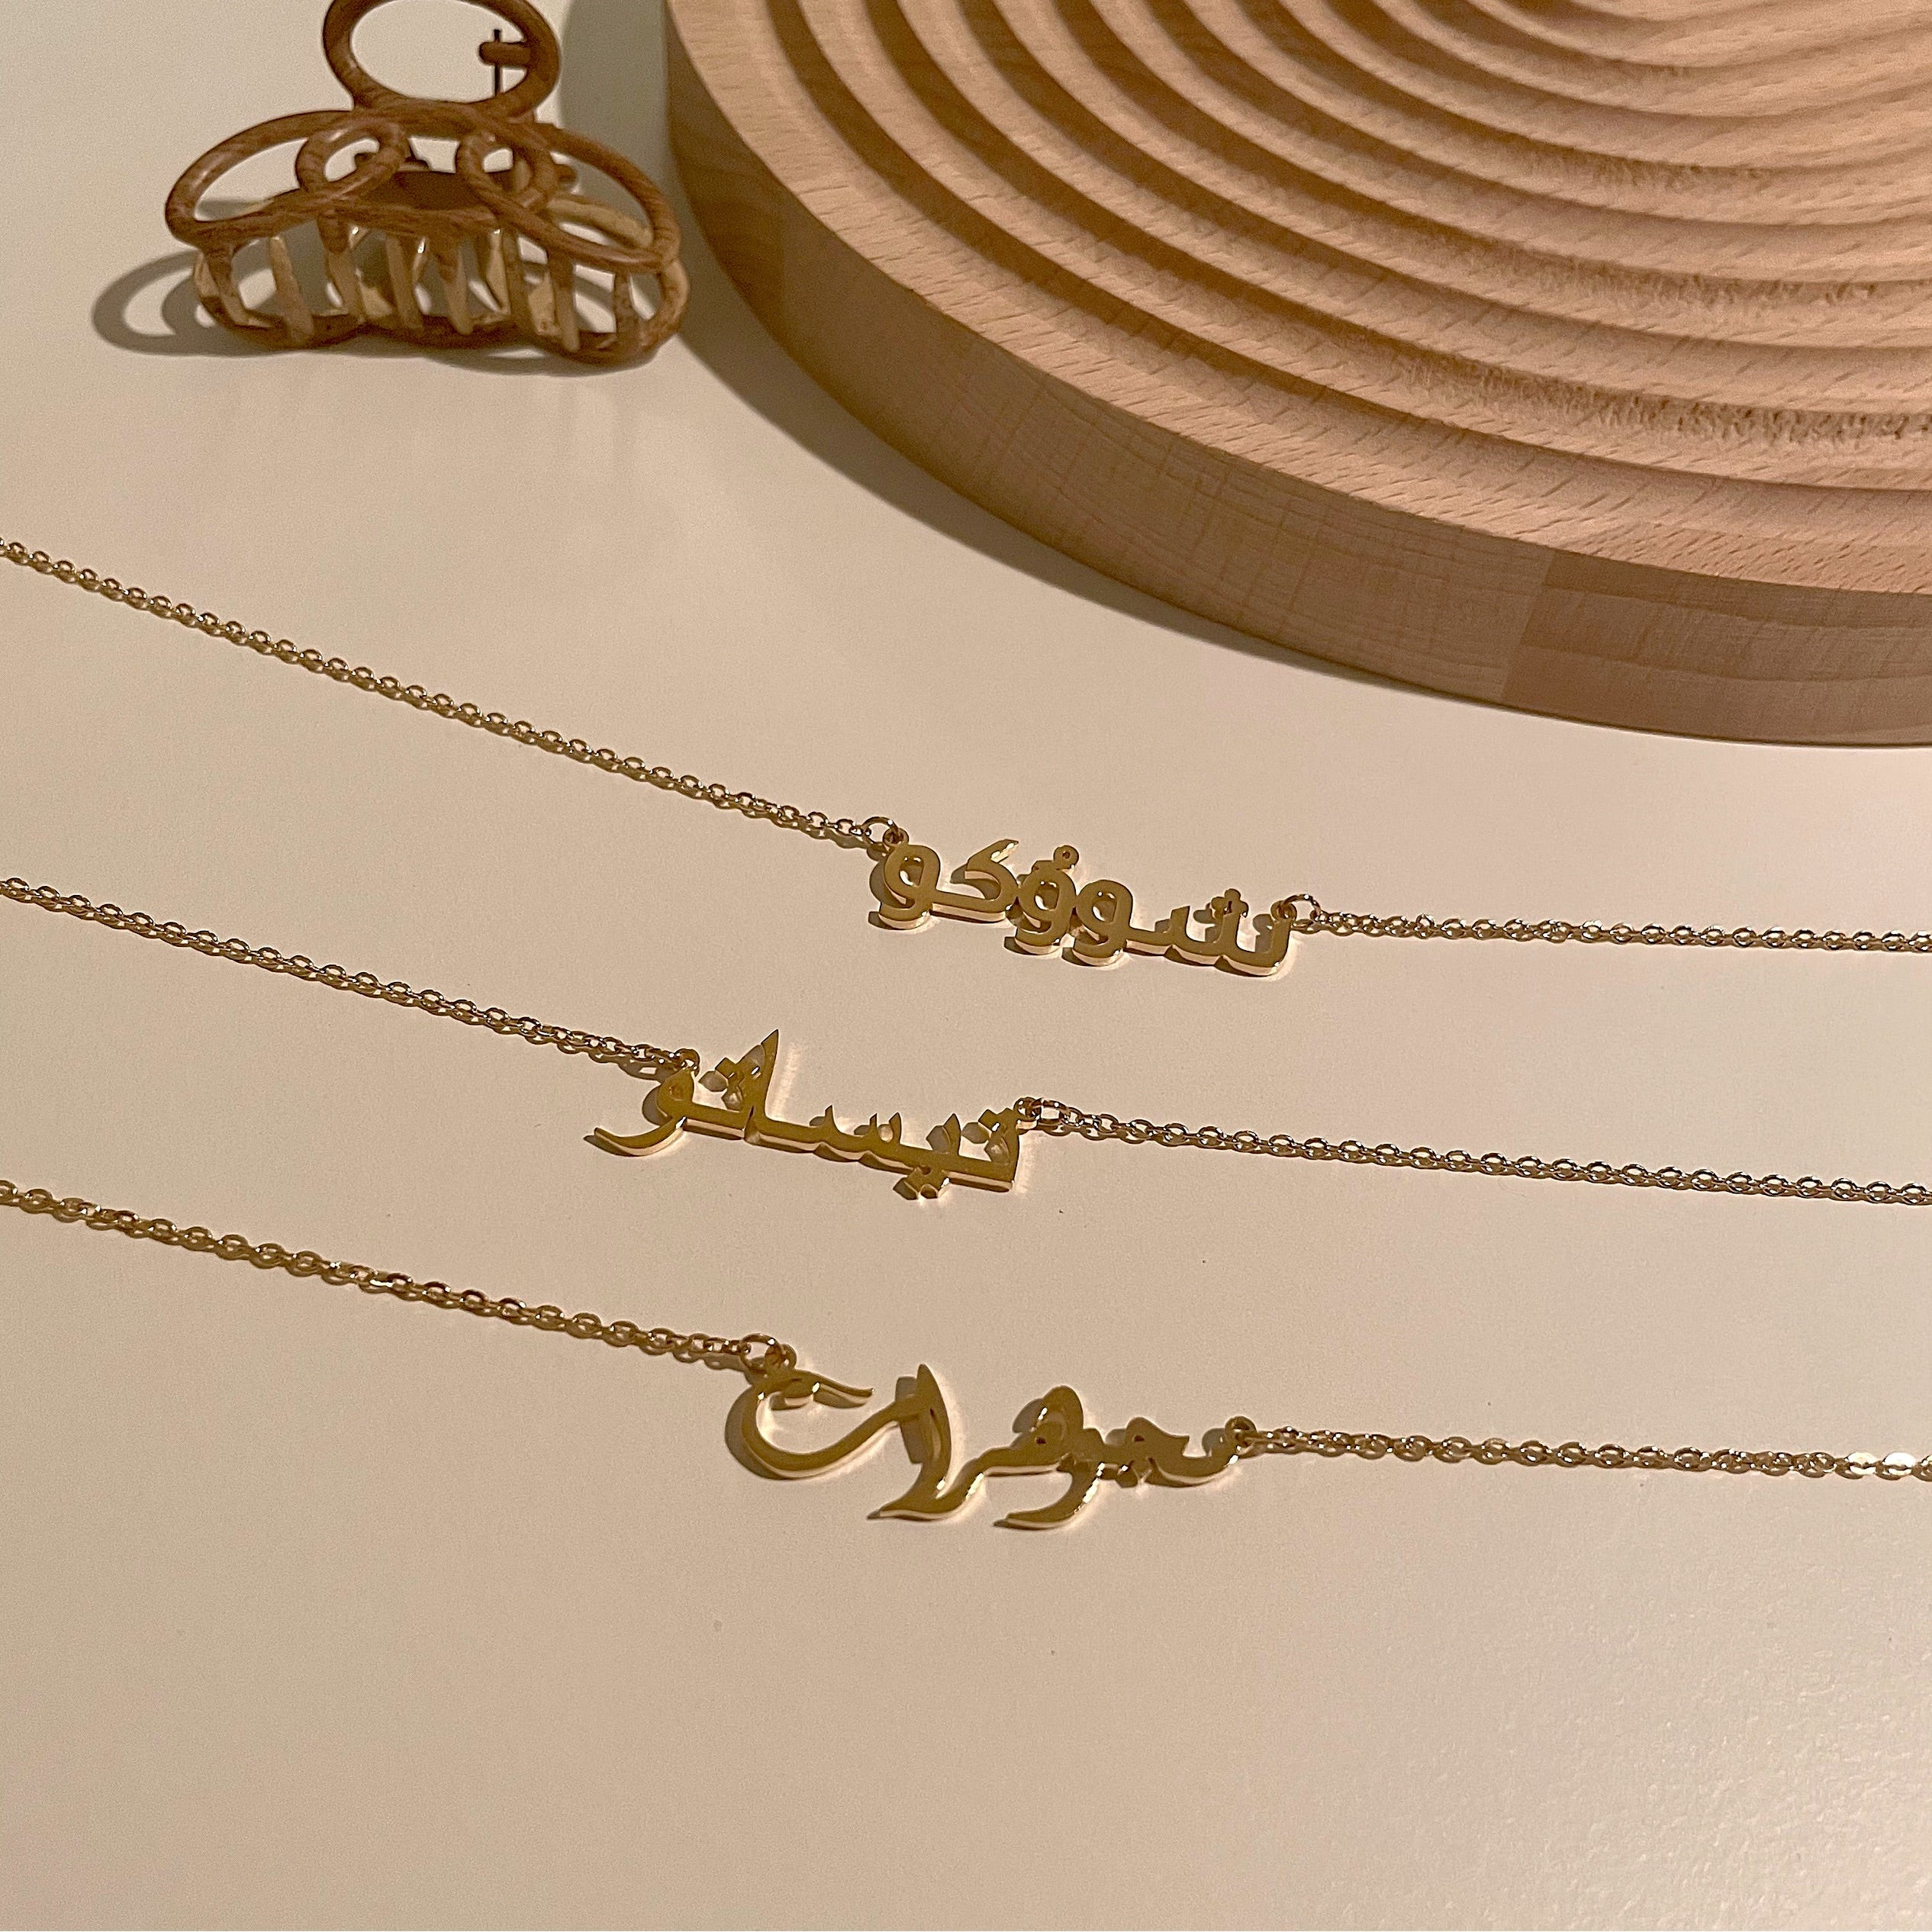 Name necklace Arabic letter K18 coating